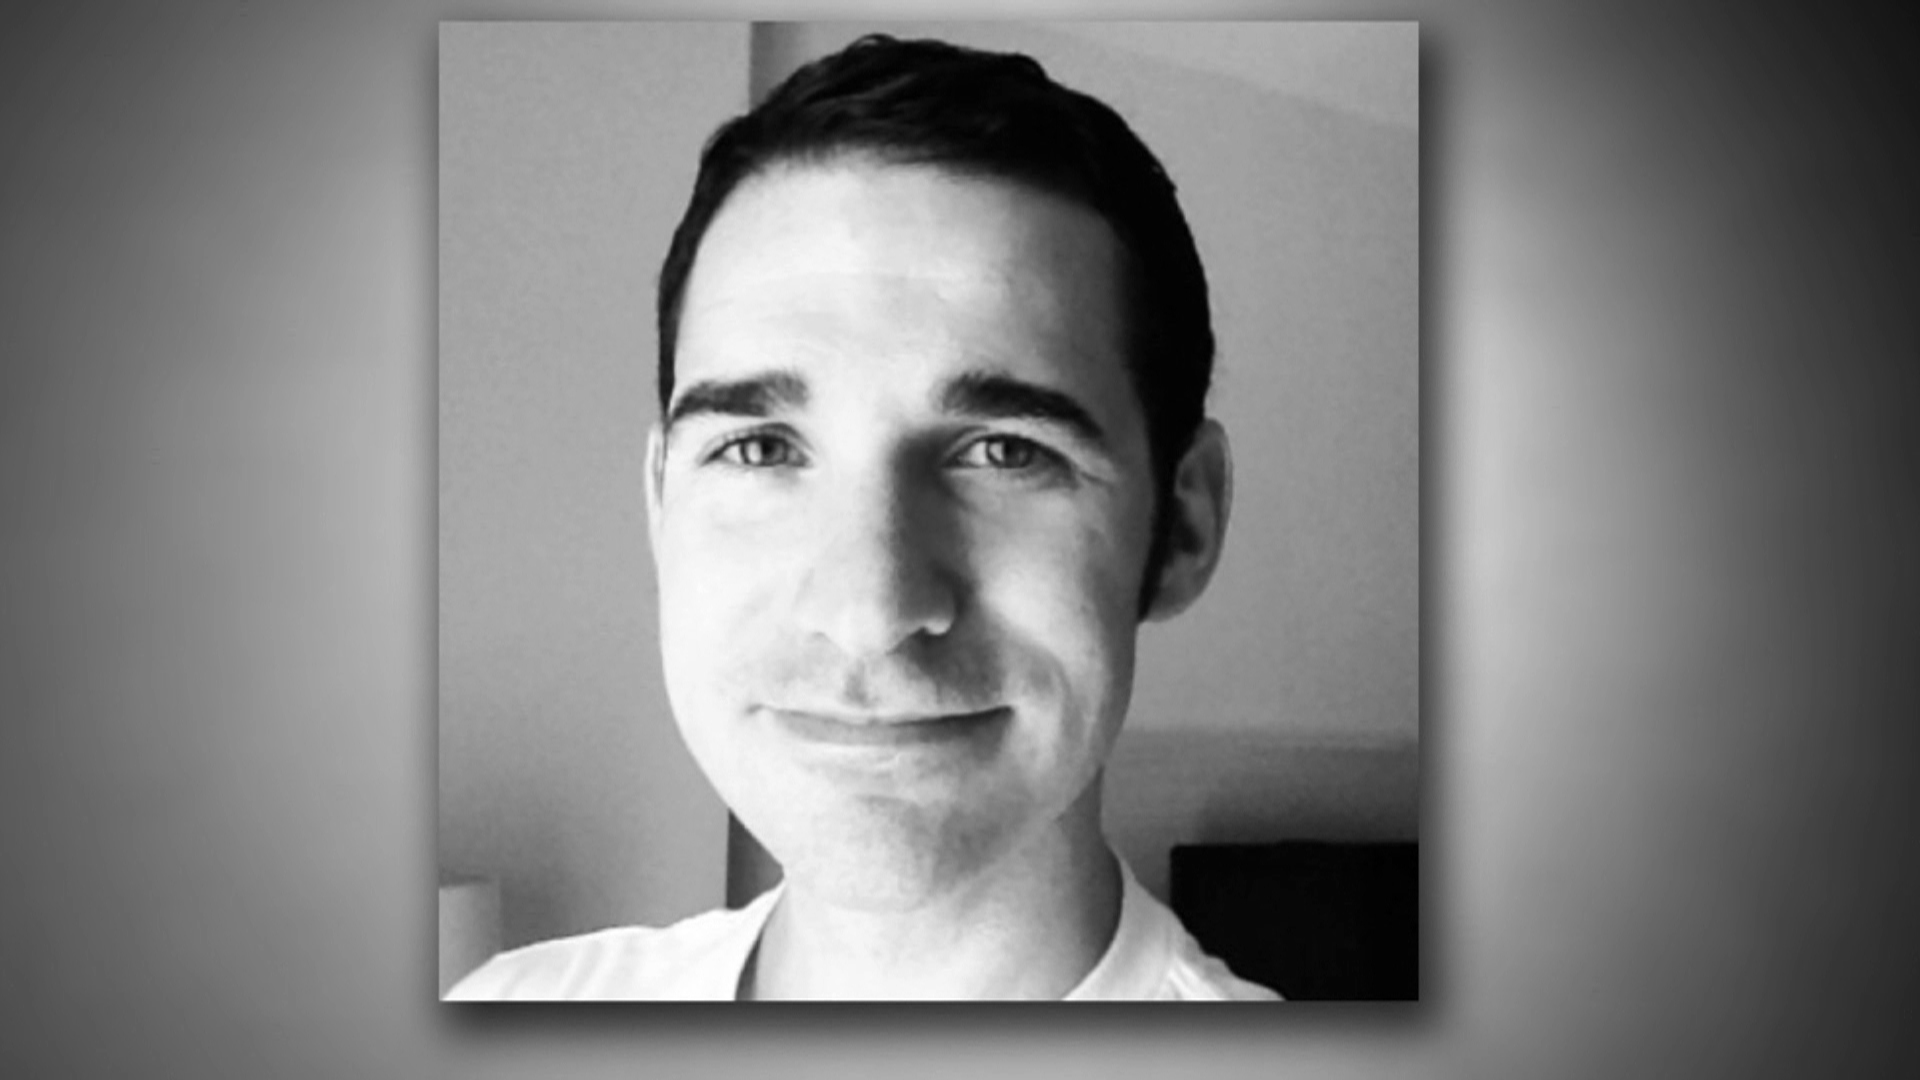 Last U.S. Ebola Patient Is Cured: Dr. Craig Spencer to Be Released